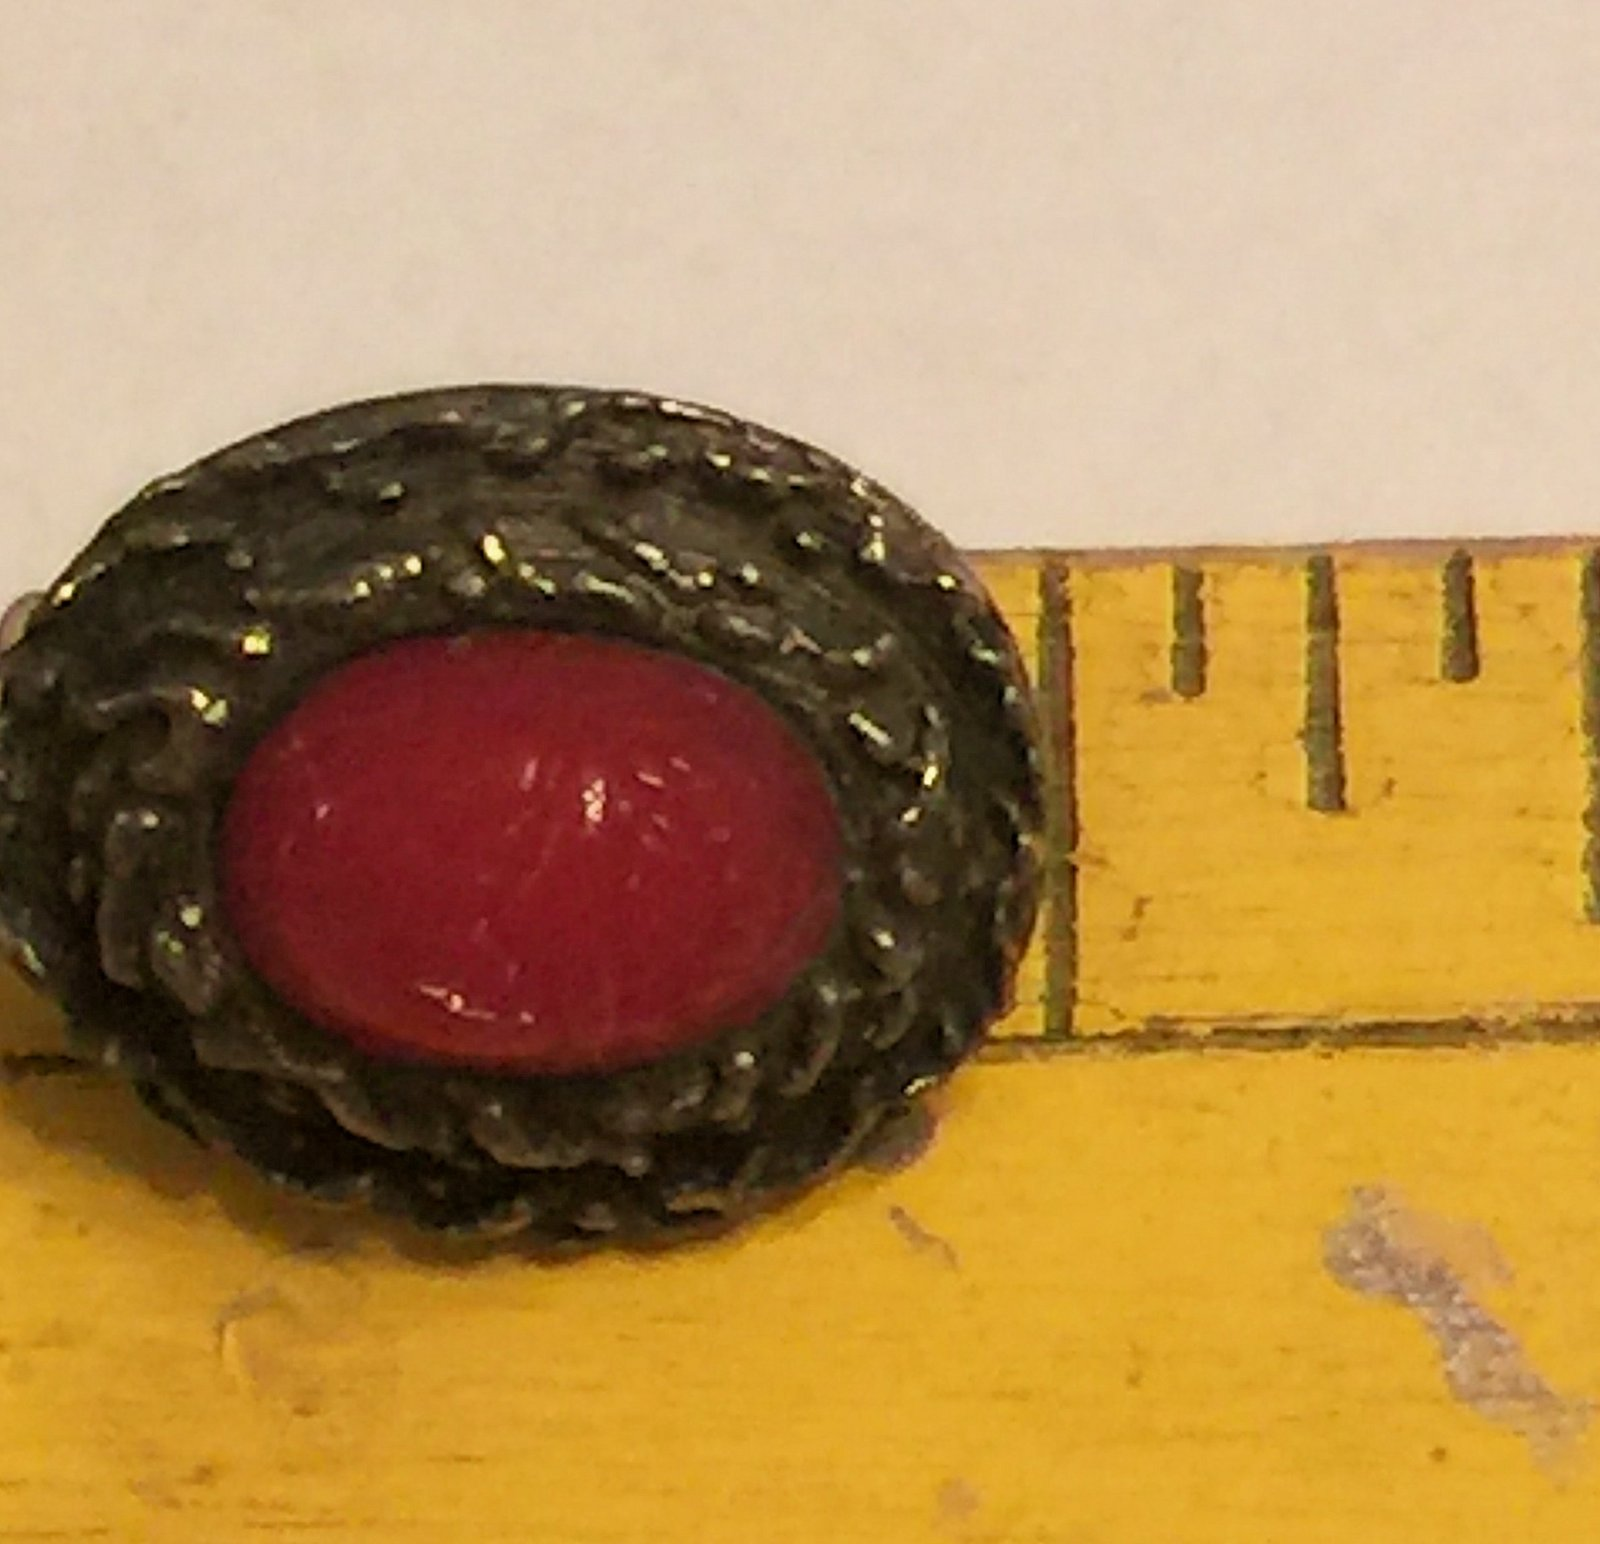 VTG 60s Clip On Earrings~Dk Red Oval Scarab Beetle Cabochon/Darkened Gold Tone image 6